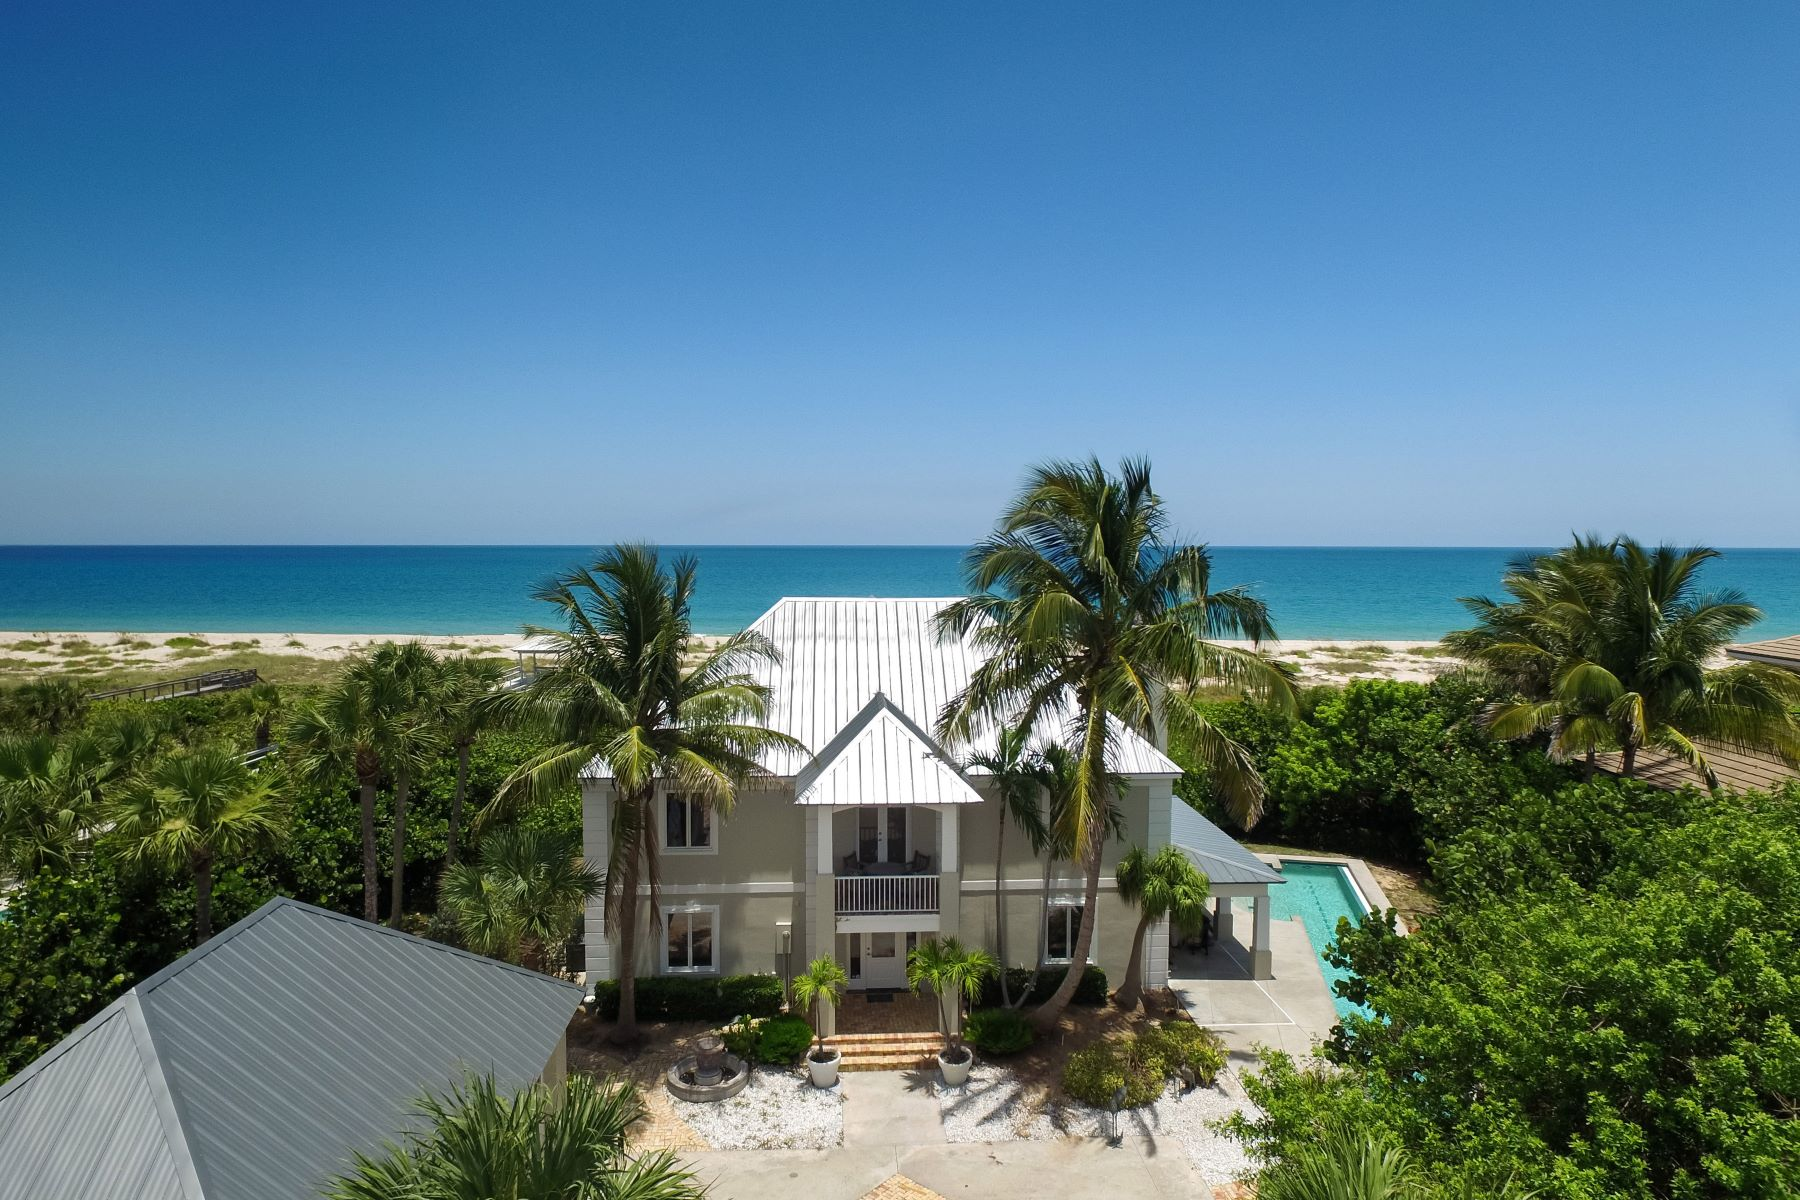 Single Family Home for Sale at Oceanfront Estate Home 820 Crescent Beach Road Vero Beach, Florida, 32963 United States